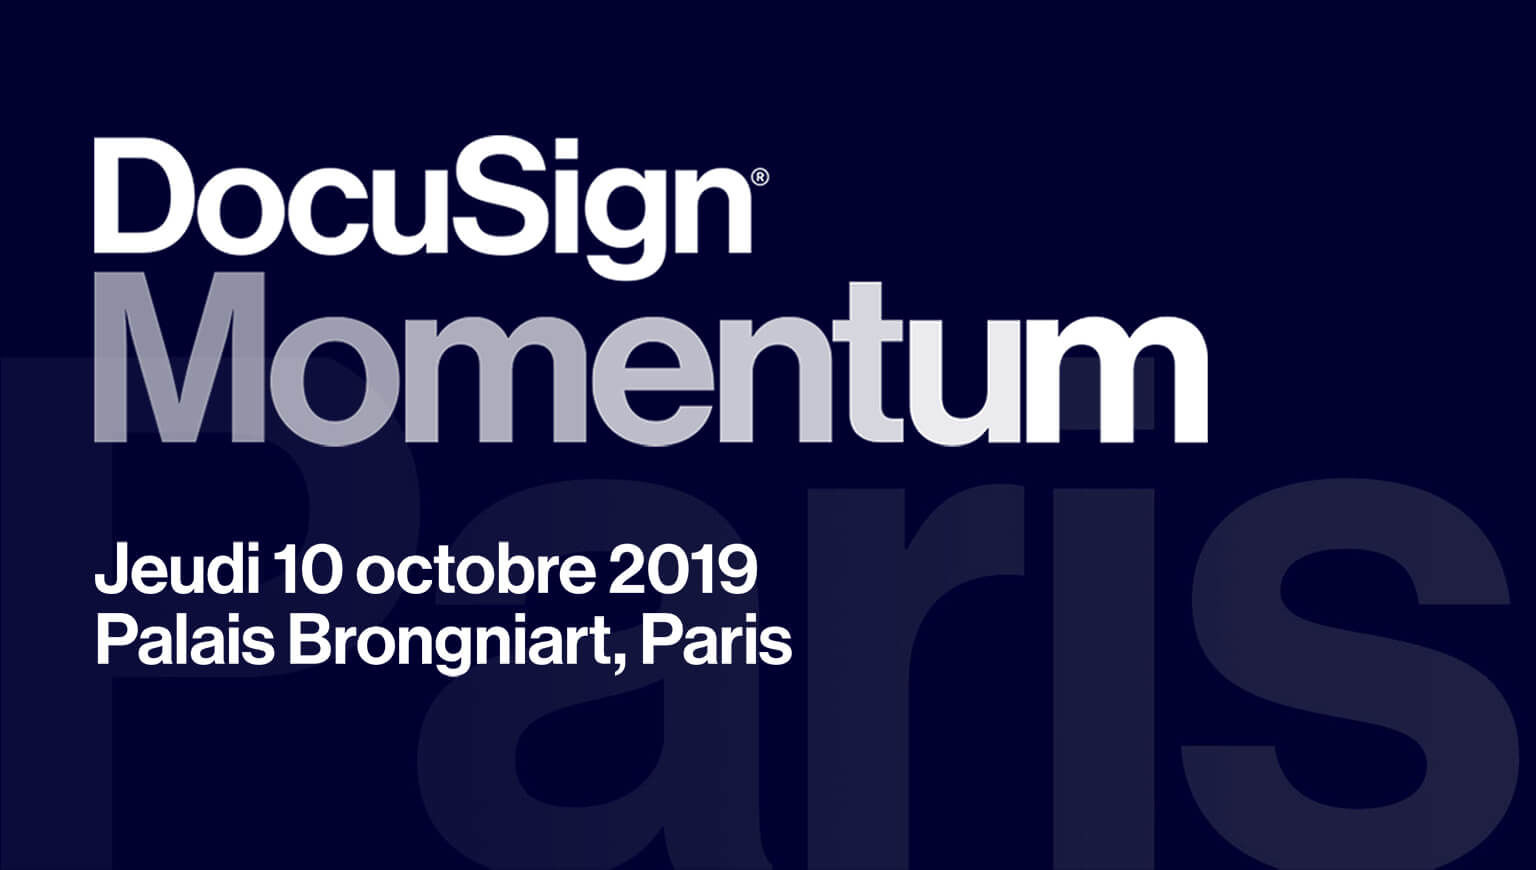 DocuSign Momentum Jeudi 10 octore 2019, Palais Brogniart, Paris.